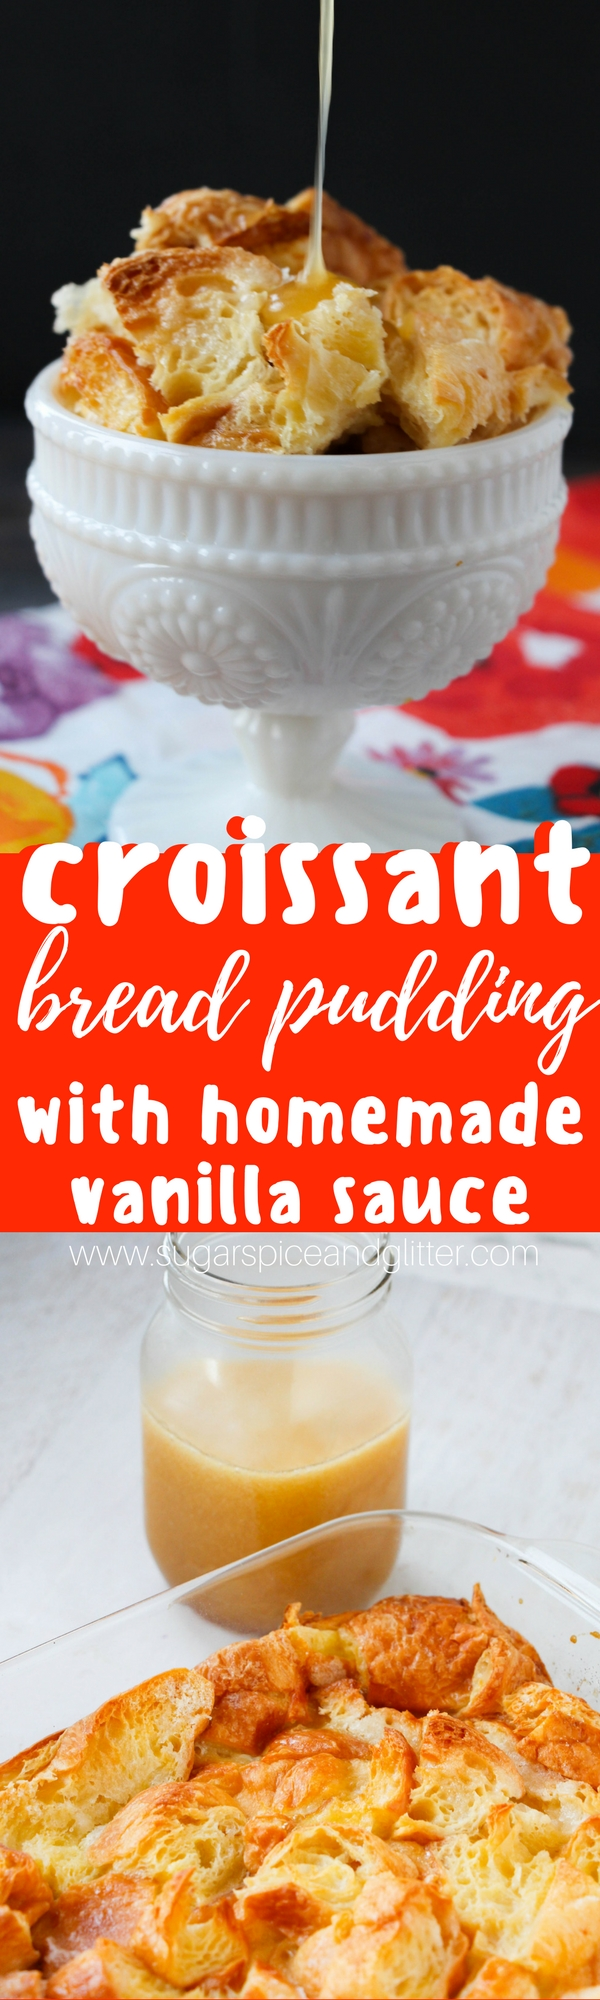 Croissant bread pudding with warm homemade vanilla sauce - a decadent brunch recipe using leftover croissants